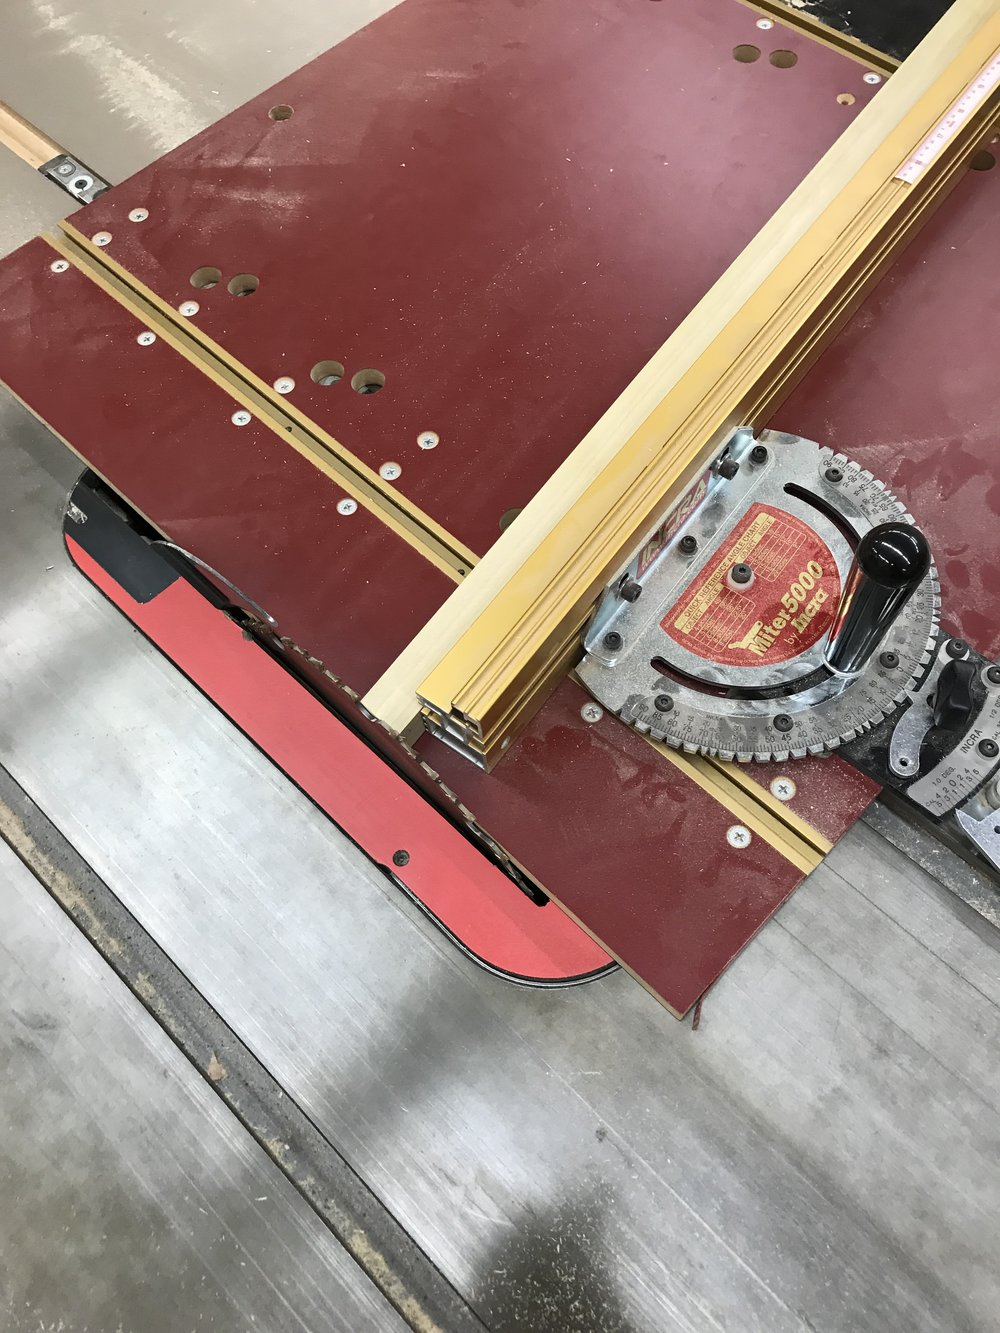 Using the miter gage to cut slanted legs to match floor